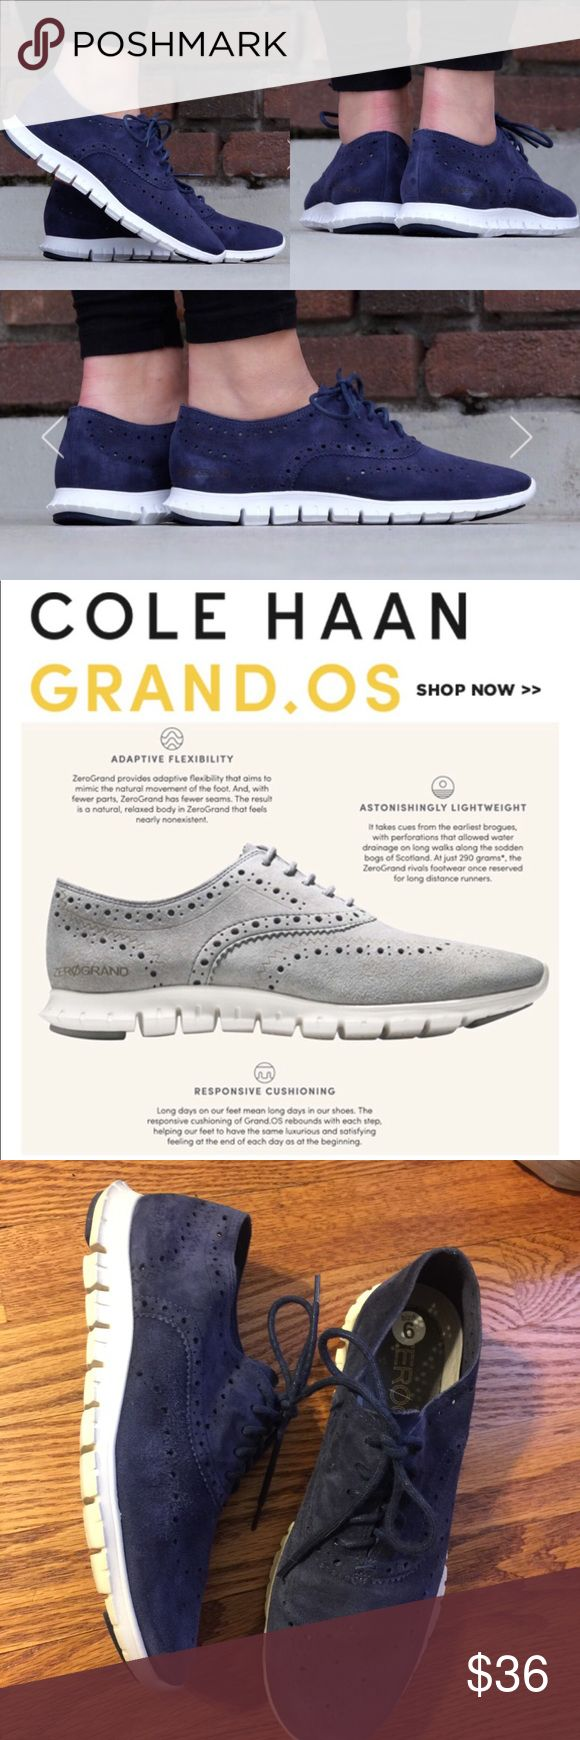 Cole Haan Zero Grand perforated sneakers The most comfortable, lightest, softest sneakers you can wear! Cole Haan Zero Grand OS perforated wingtip design navy suede sneakers. Great condition, lightly used, no damage. Make these yours for a steal. Or, bundle and save more! Cole Haan Shoes Sneakers